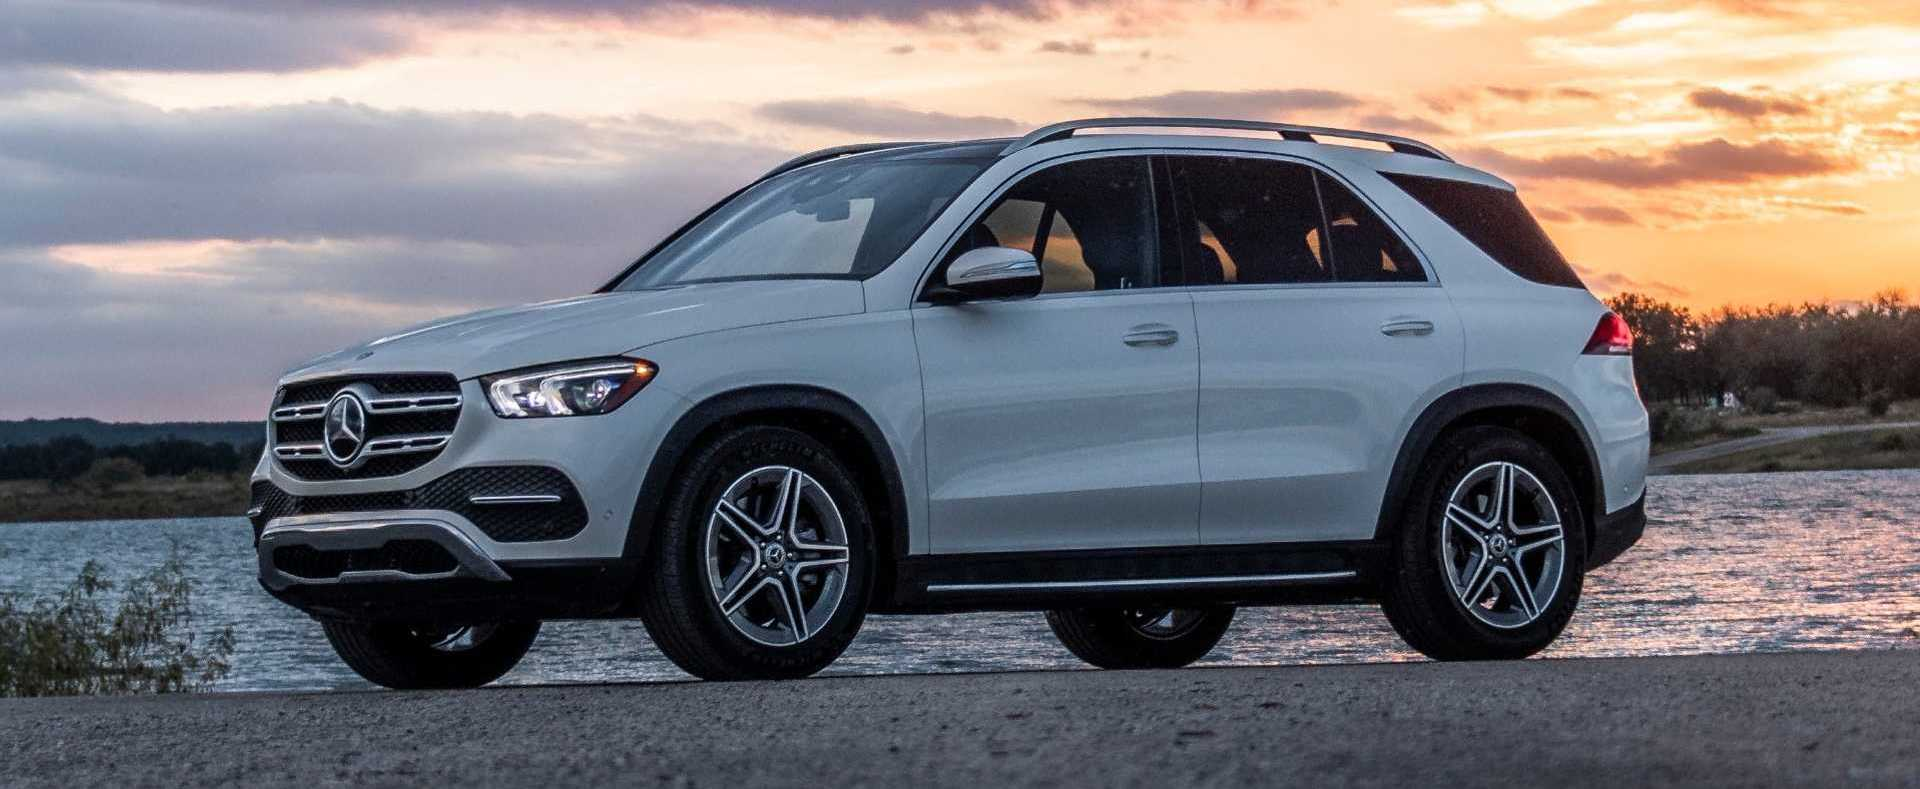 Volkswagen, Mercedes SUVs Earn Highest Top Safety Pick+ Awards